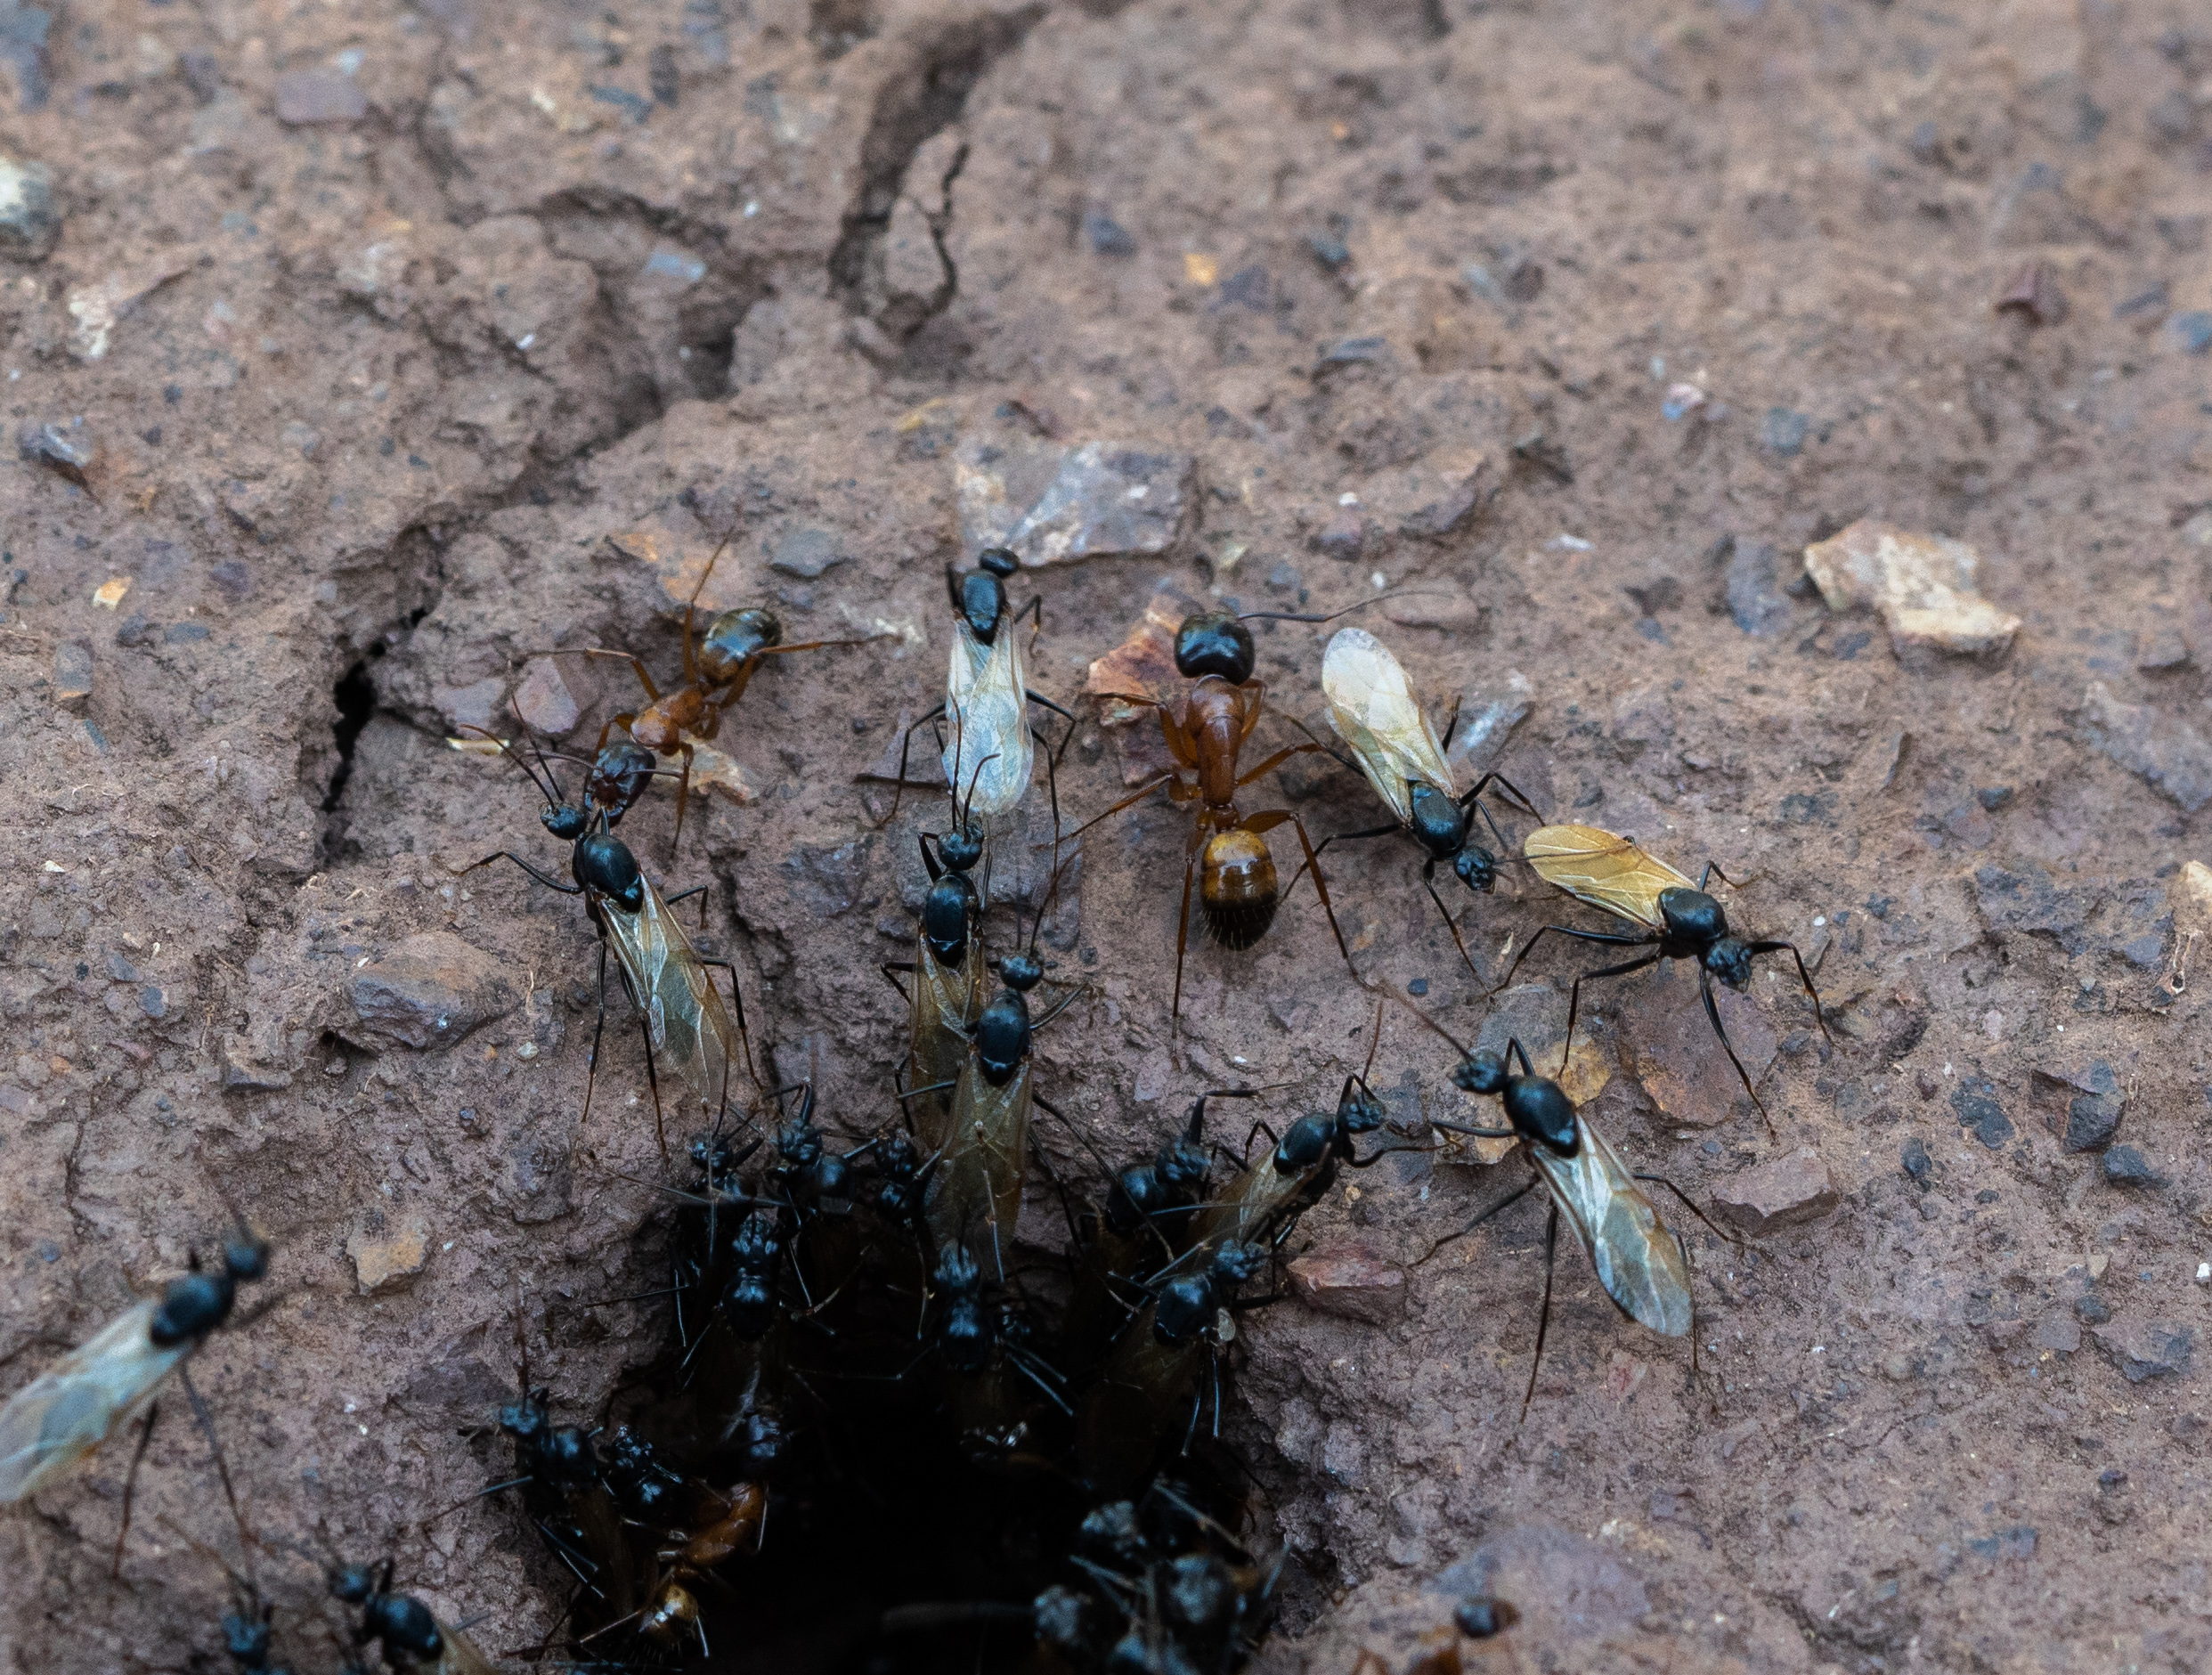 Carpenter ants nuptial flight